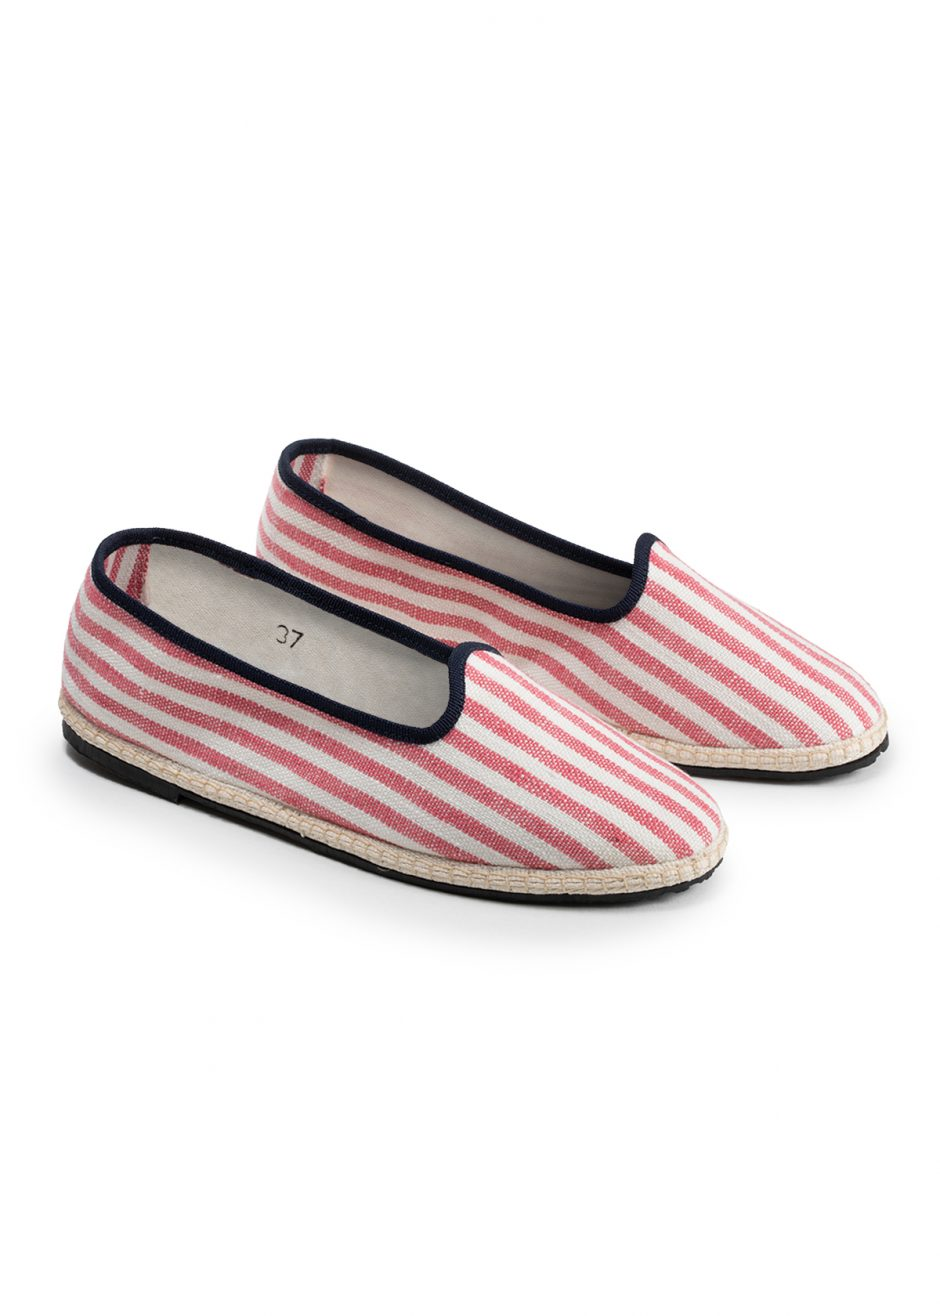 Daisy – Furlana red striped linen